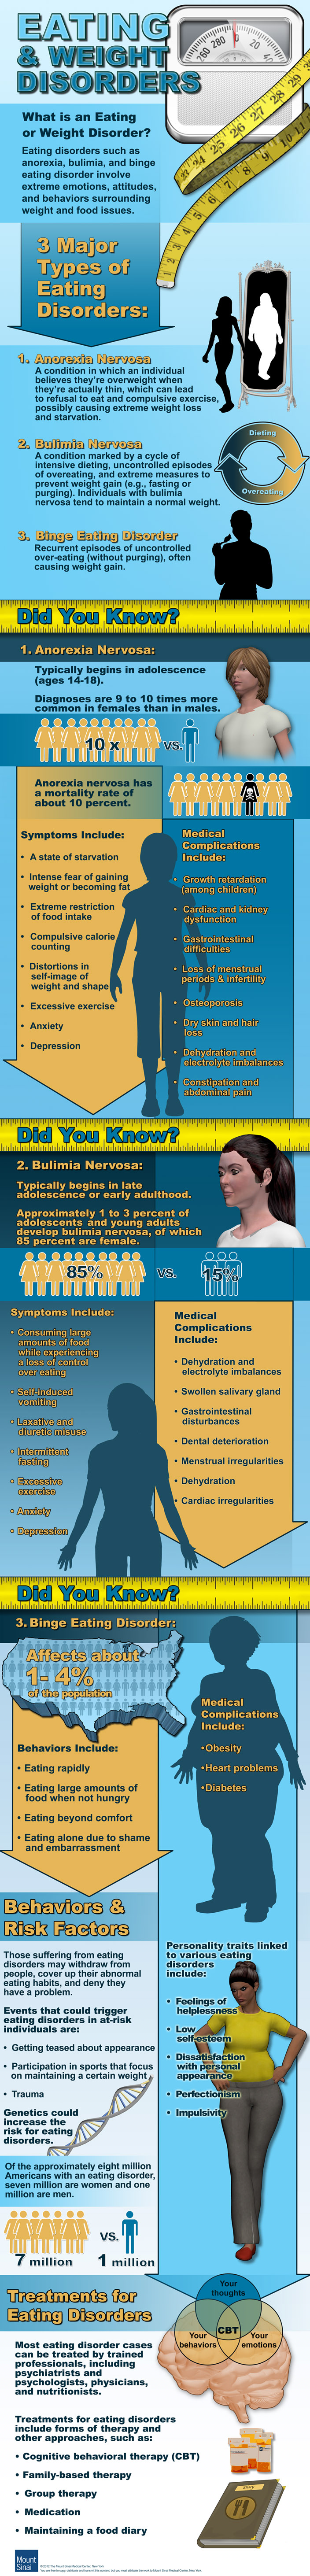 Eating and Weight Disorders Infographic